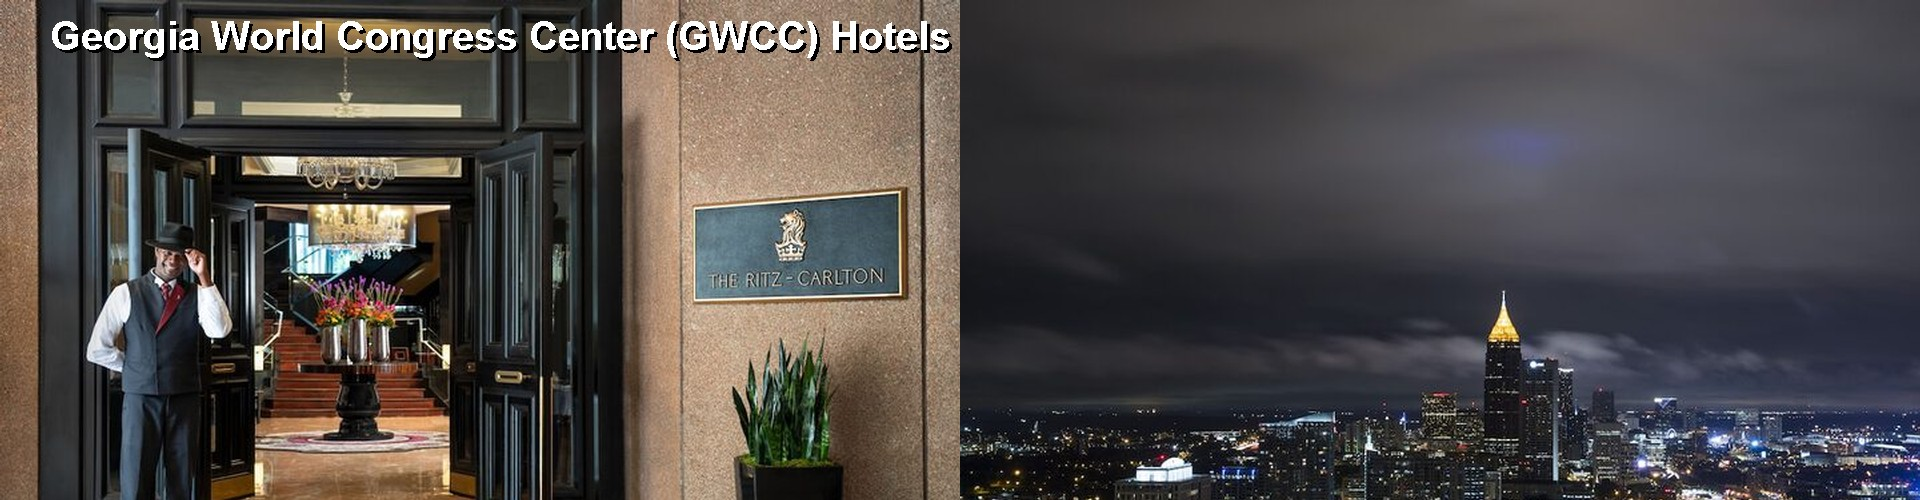 $39+ Hotels Near Georgia World Congress Center (GWCC) in Atlanta (GA)